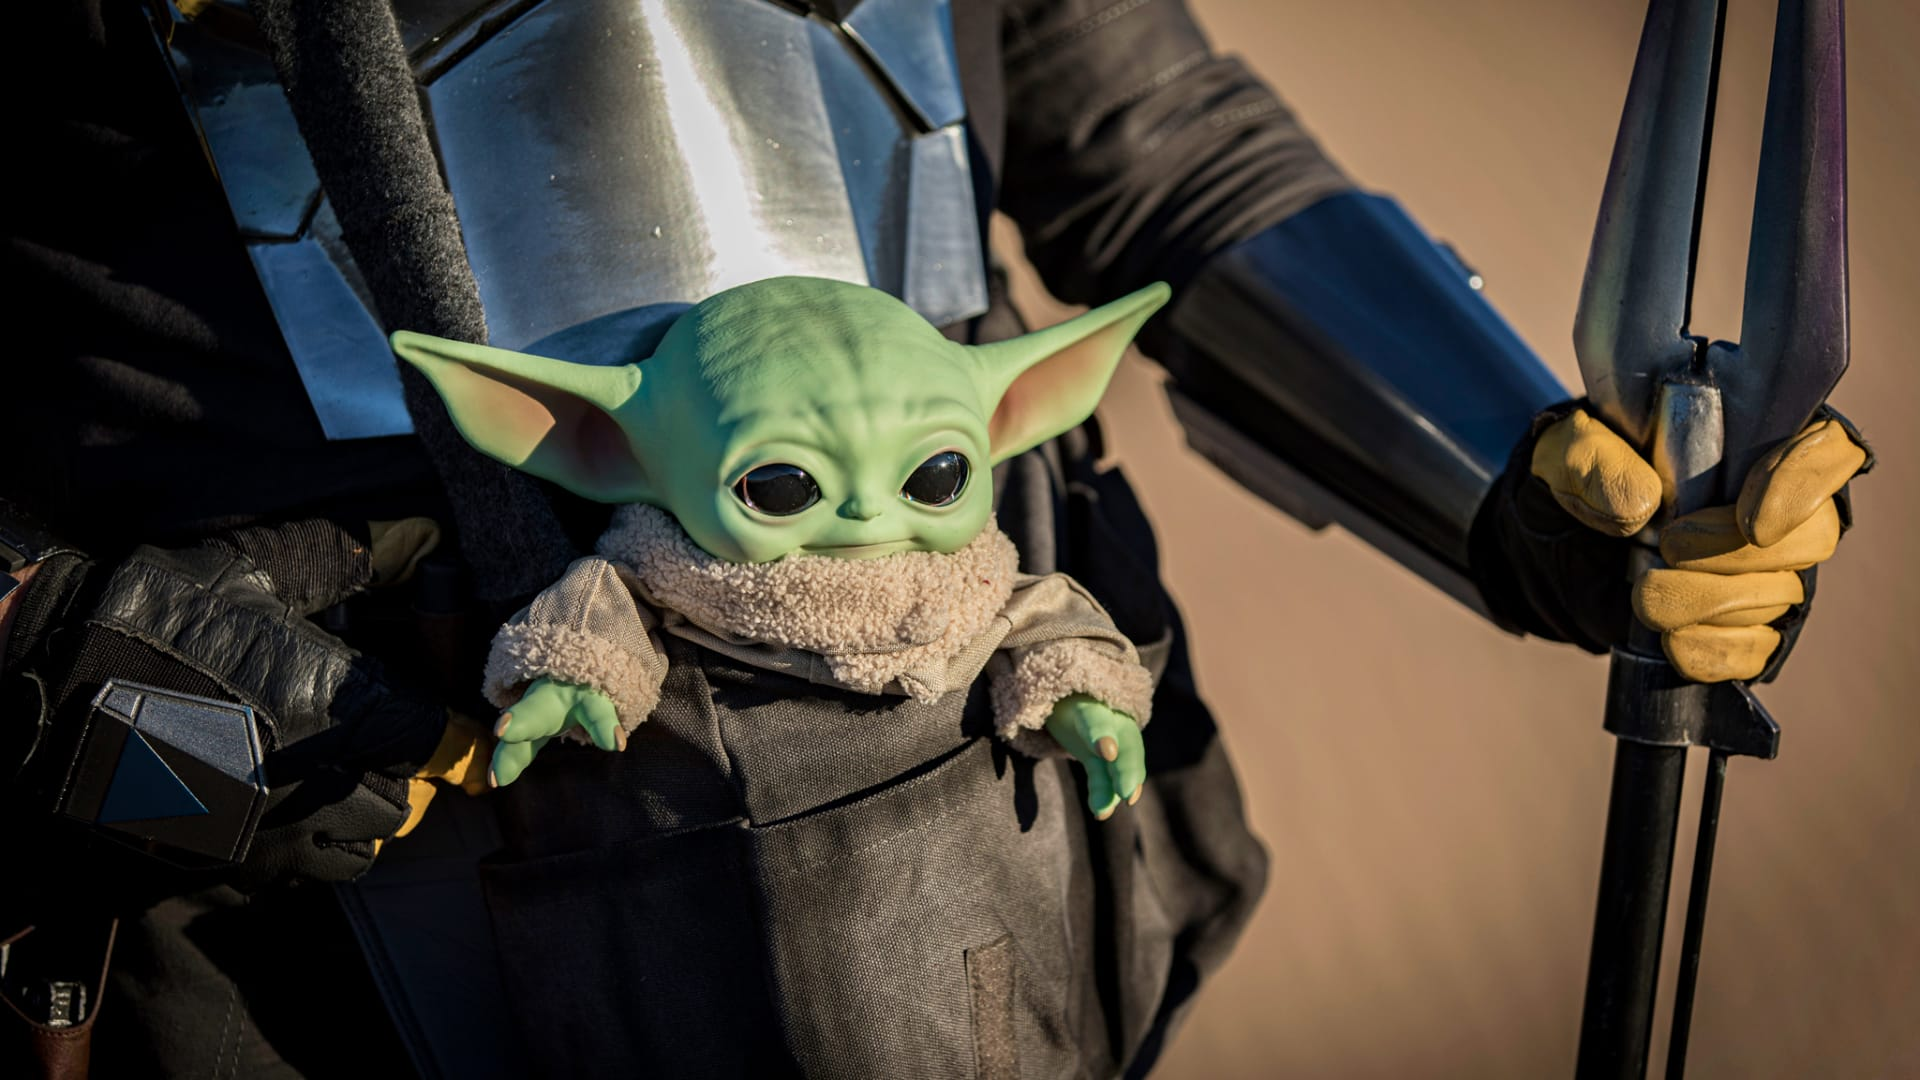 A Grogu action figure from Star Wars: The Mandalorian at Buttercup Sand Dunes on February 21, 2021 in Winterhaven, California.